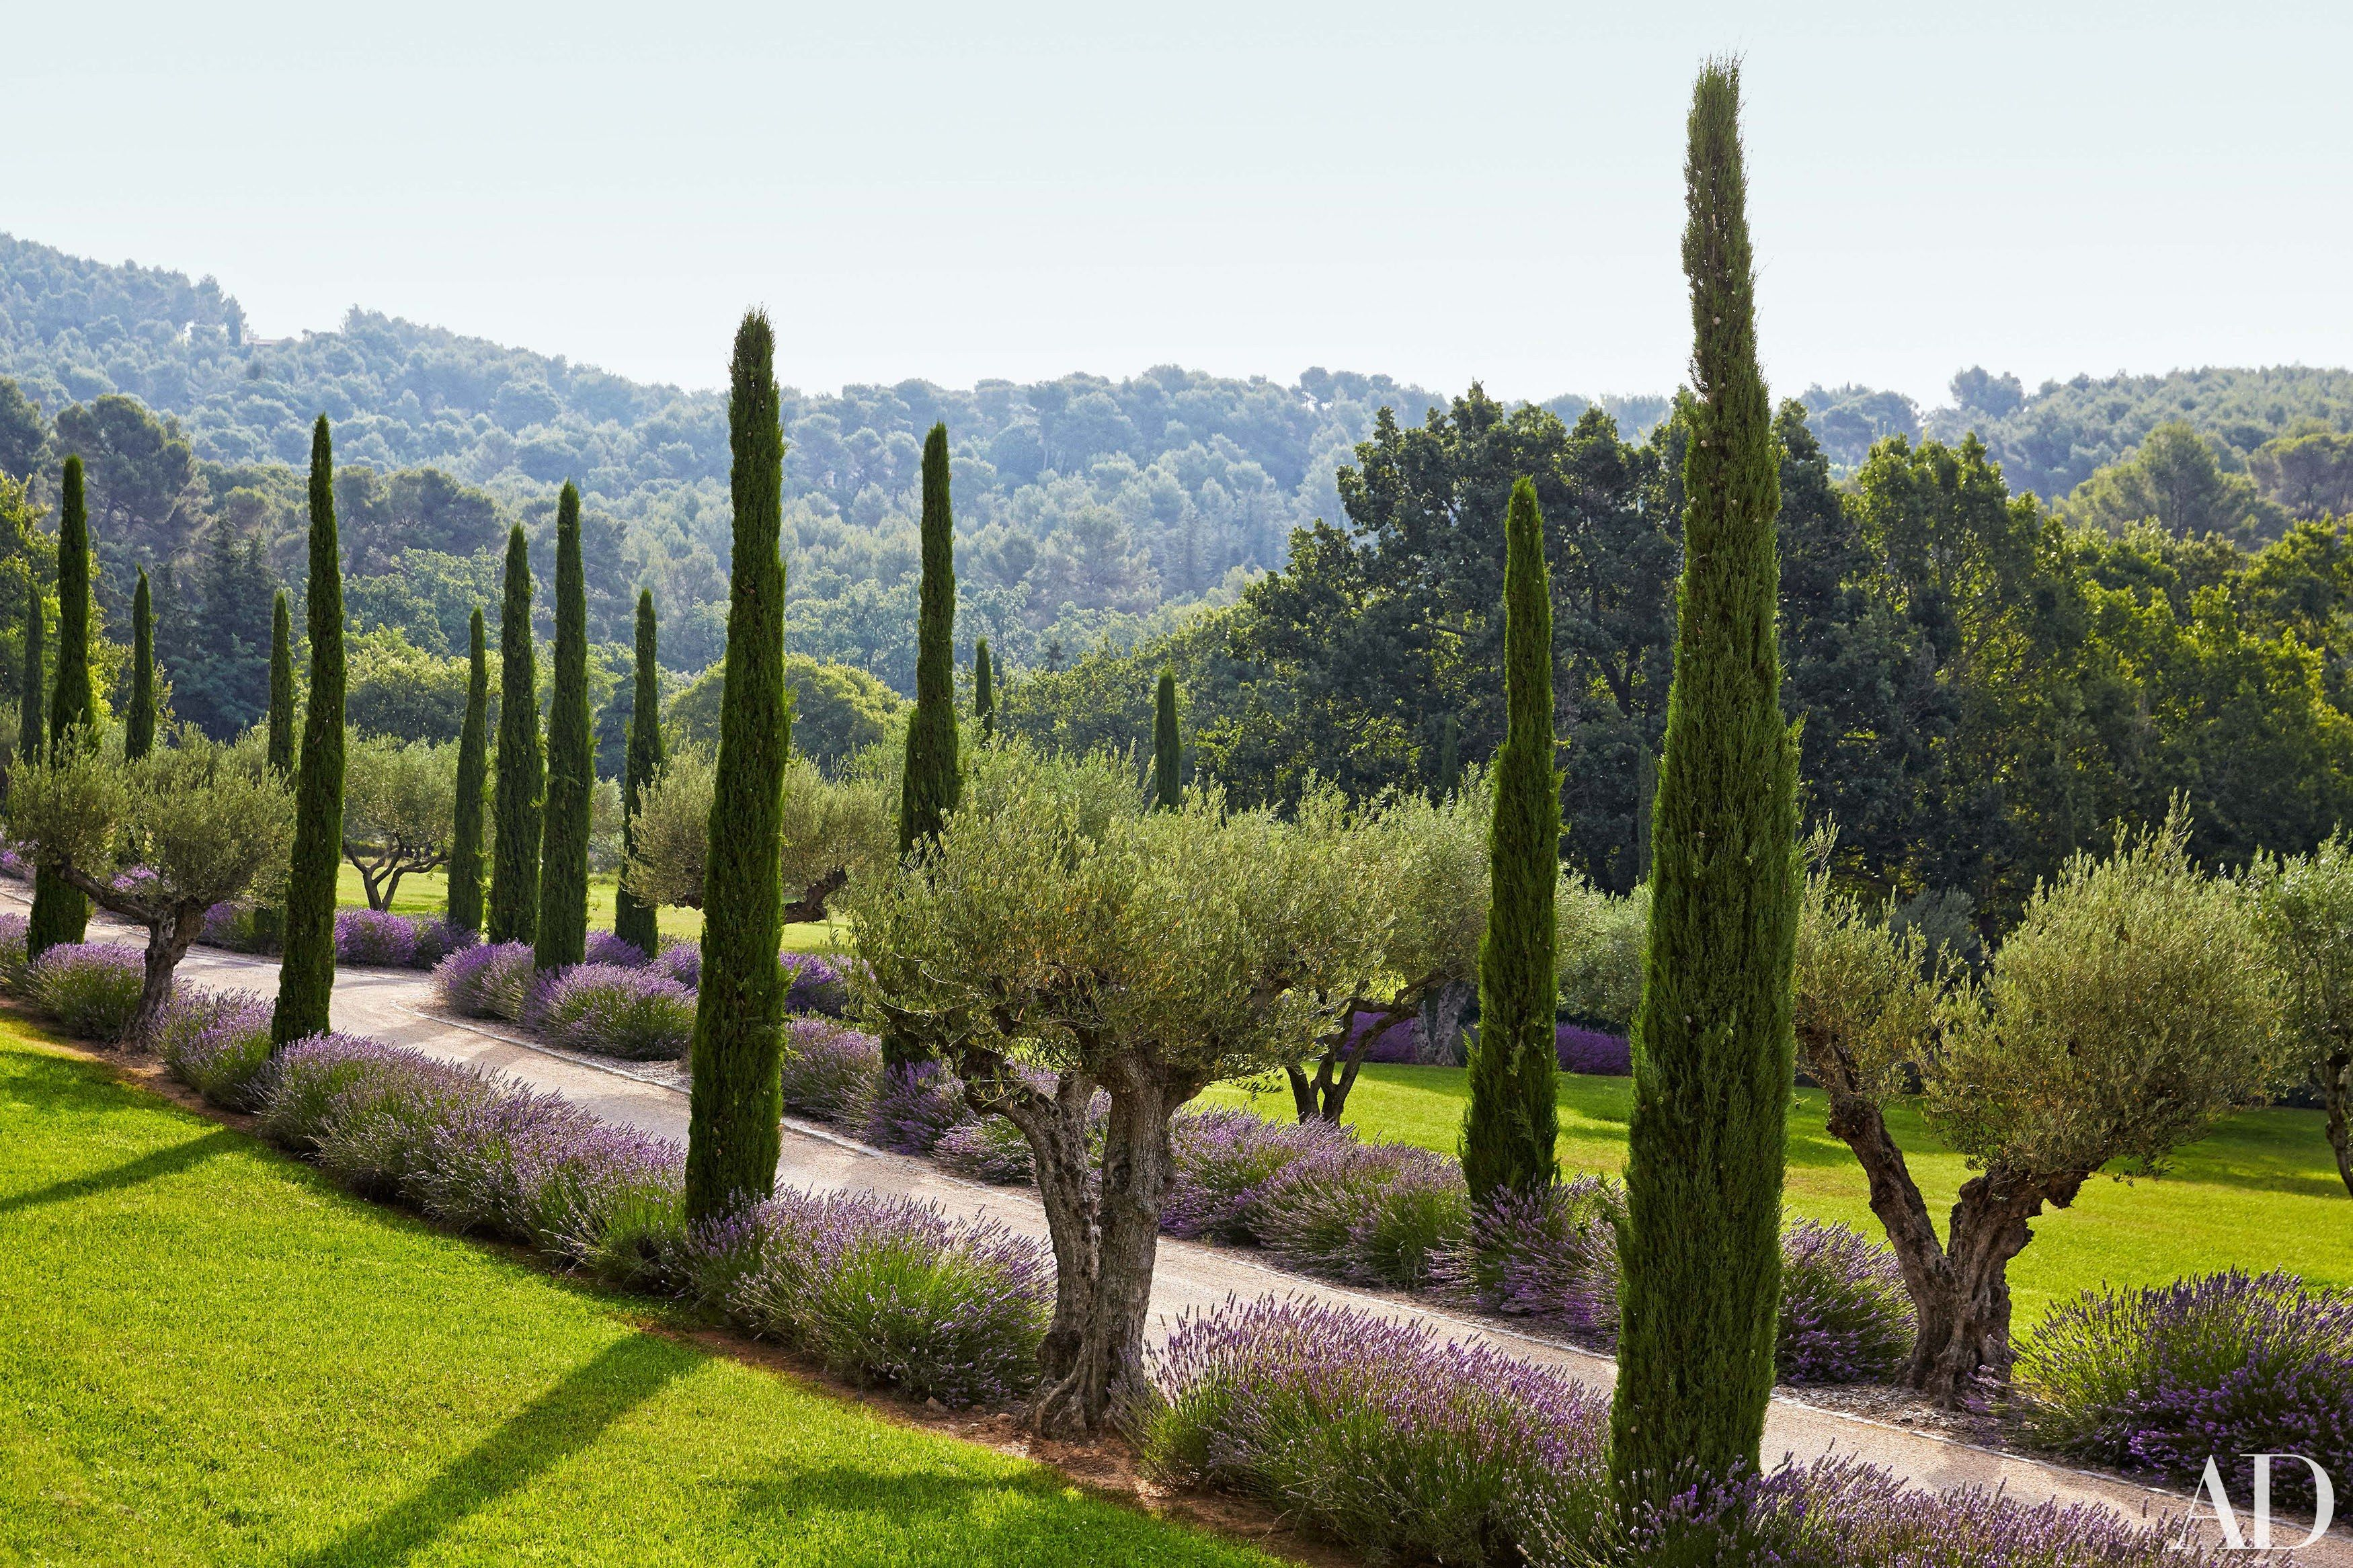 Frdric fekkais gorgeous vacation home in the south of france south of france home the entrance drive is lined with olive trees lavender and provenal cypress a symbol of welcome biocorpaavc Gallery